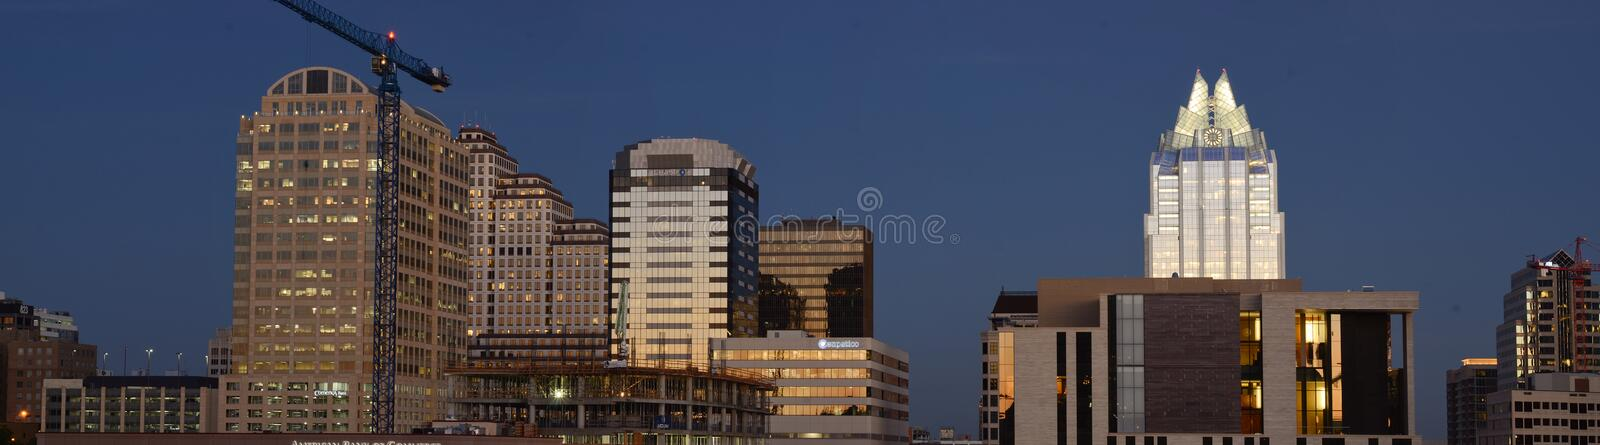 Panoramic Austin by night royalty free stock photography